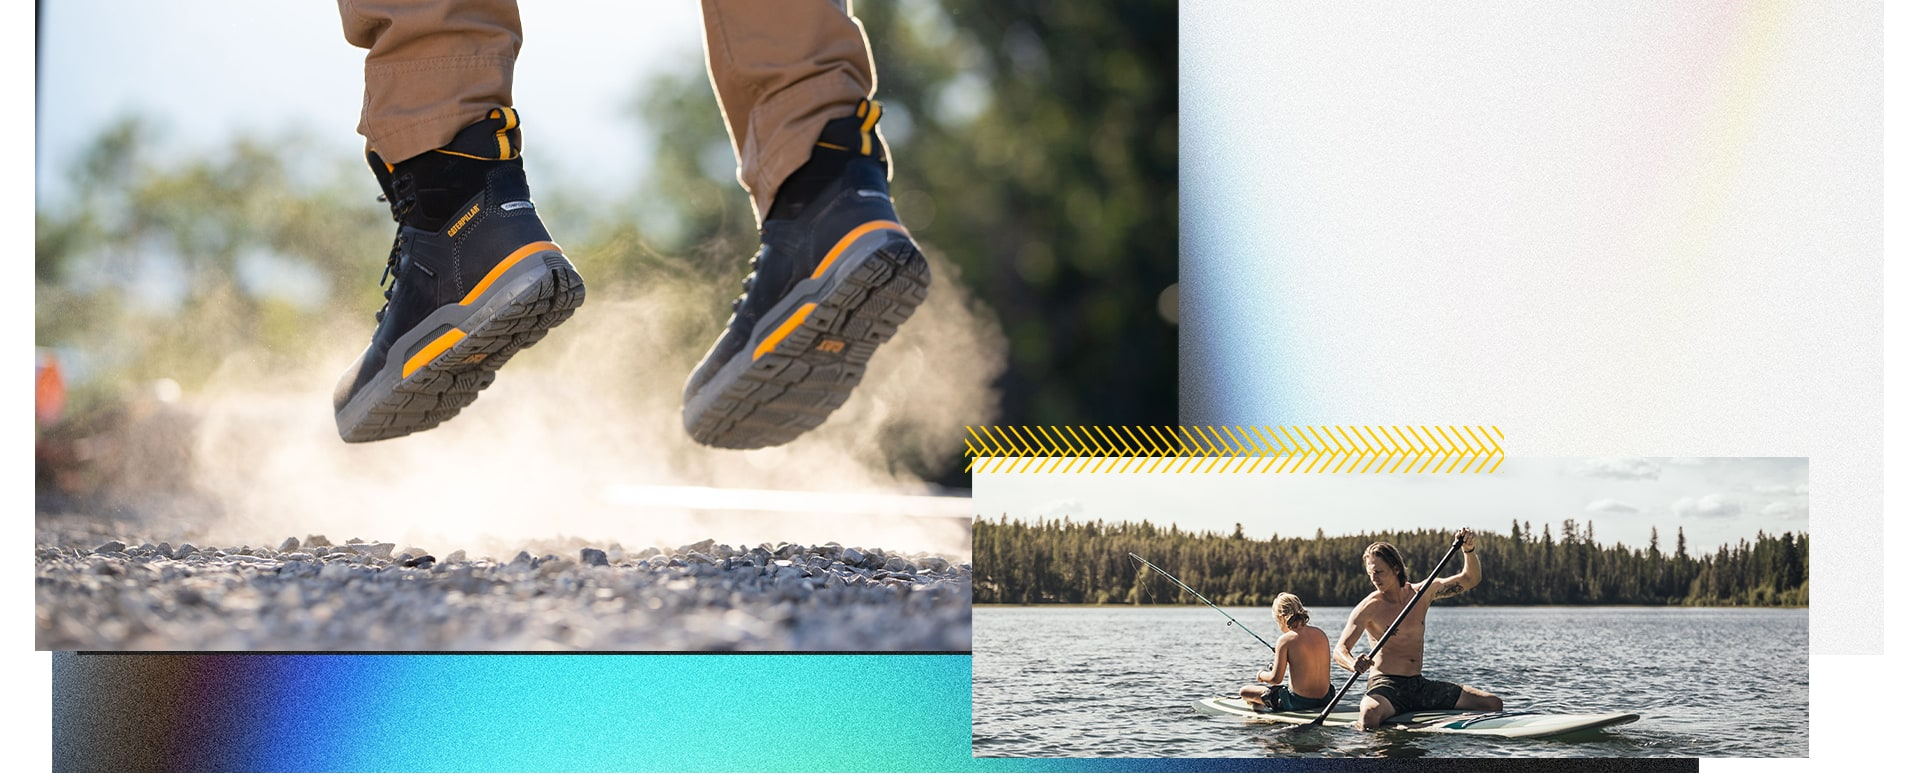 Person jumping, wearing CAT Edge boots and two people enjoying themselves on a paddle board.